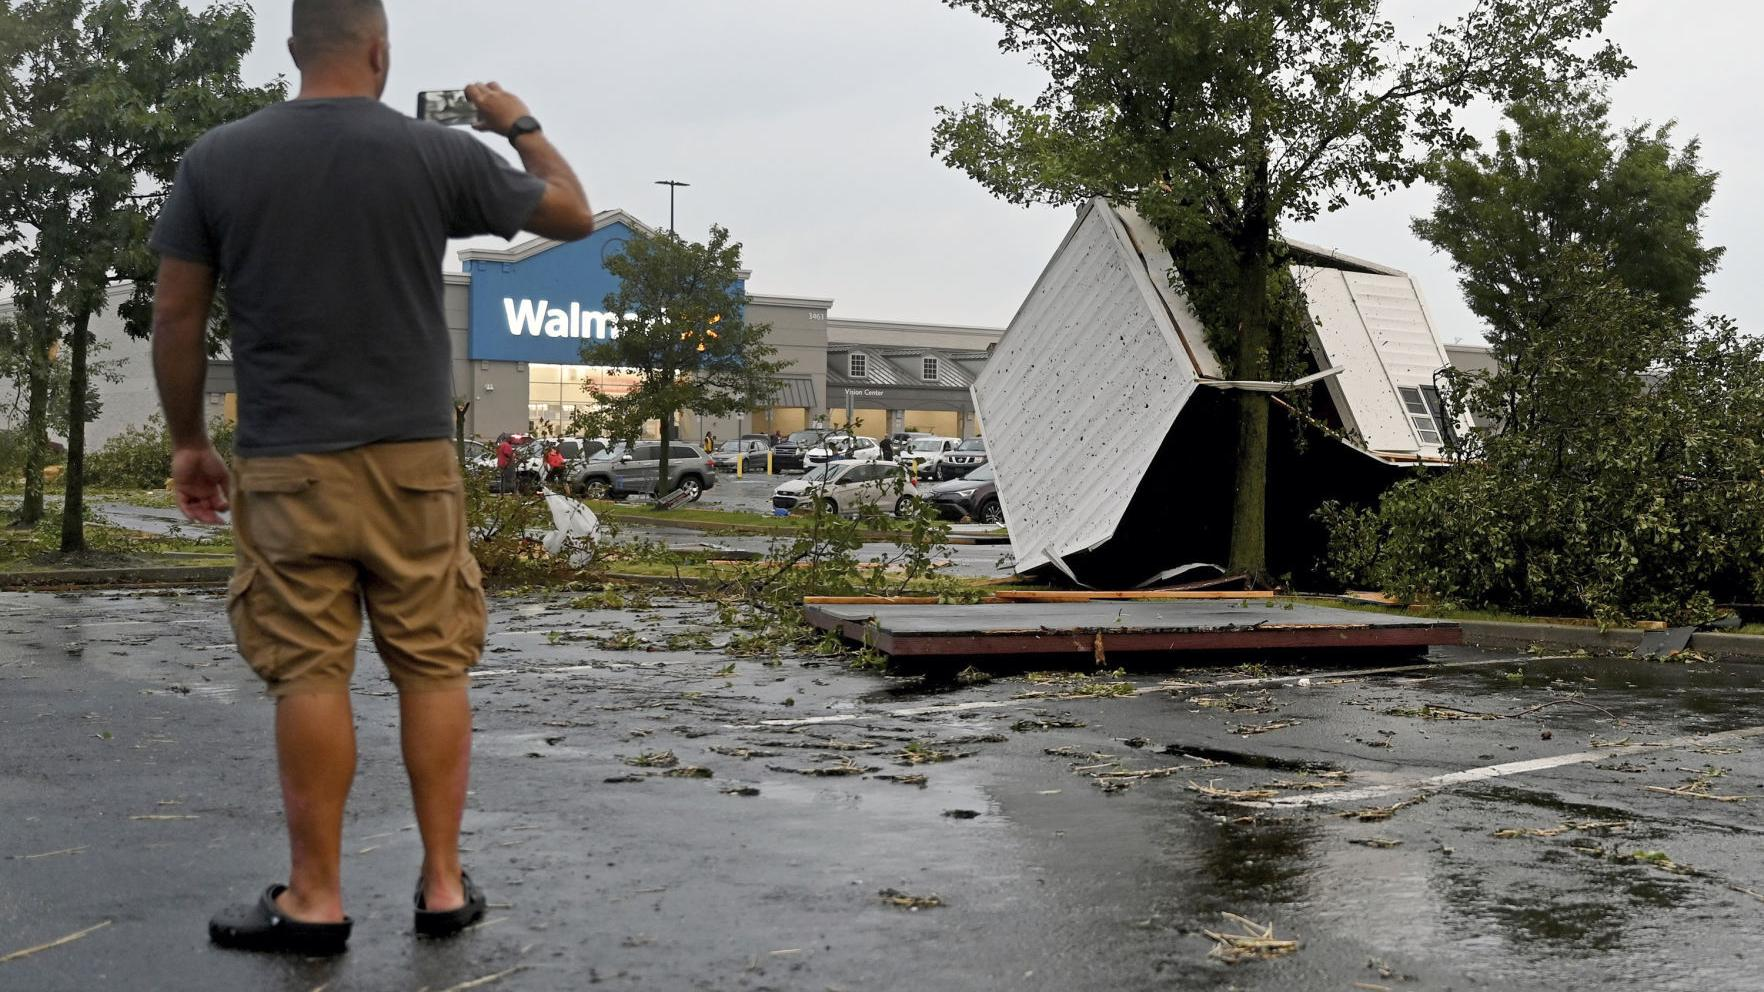 Watch Now: Tornadoes spur injuries, damage in eastern Pennsylvania Thursday